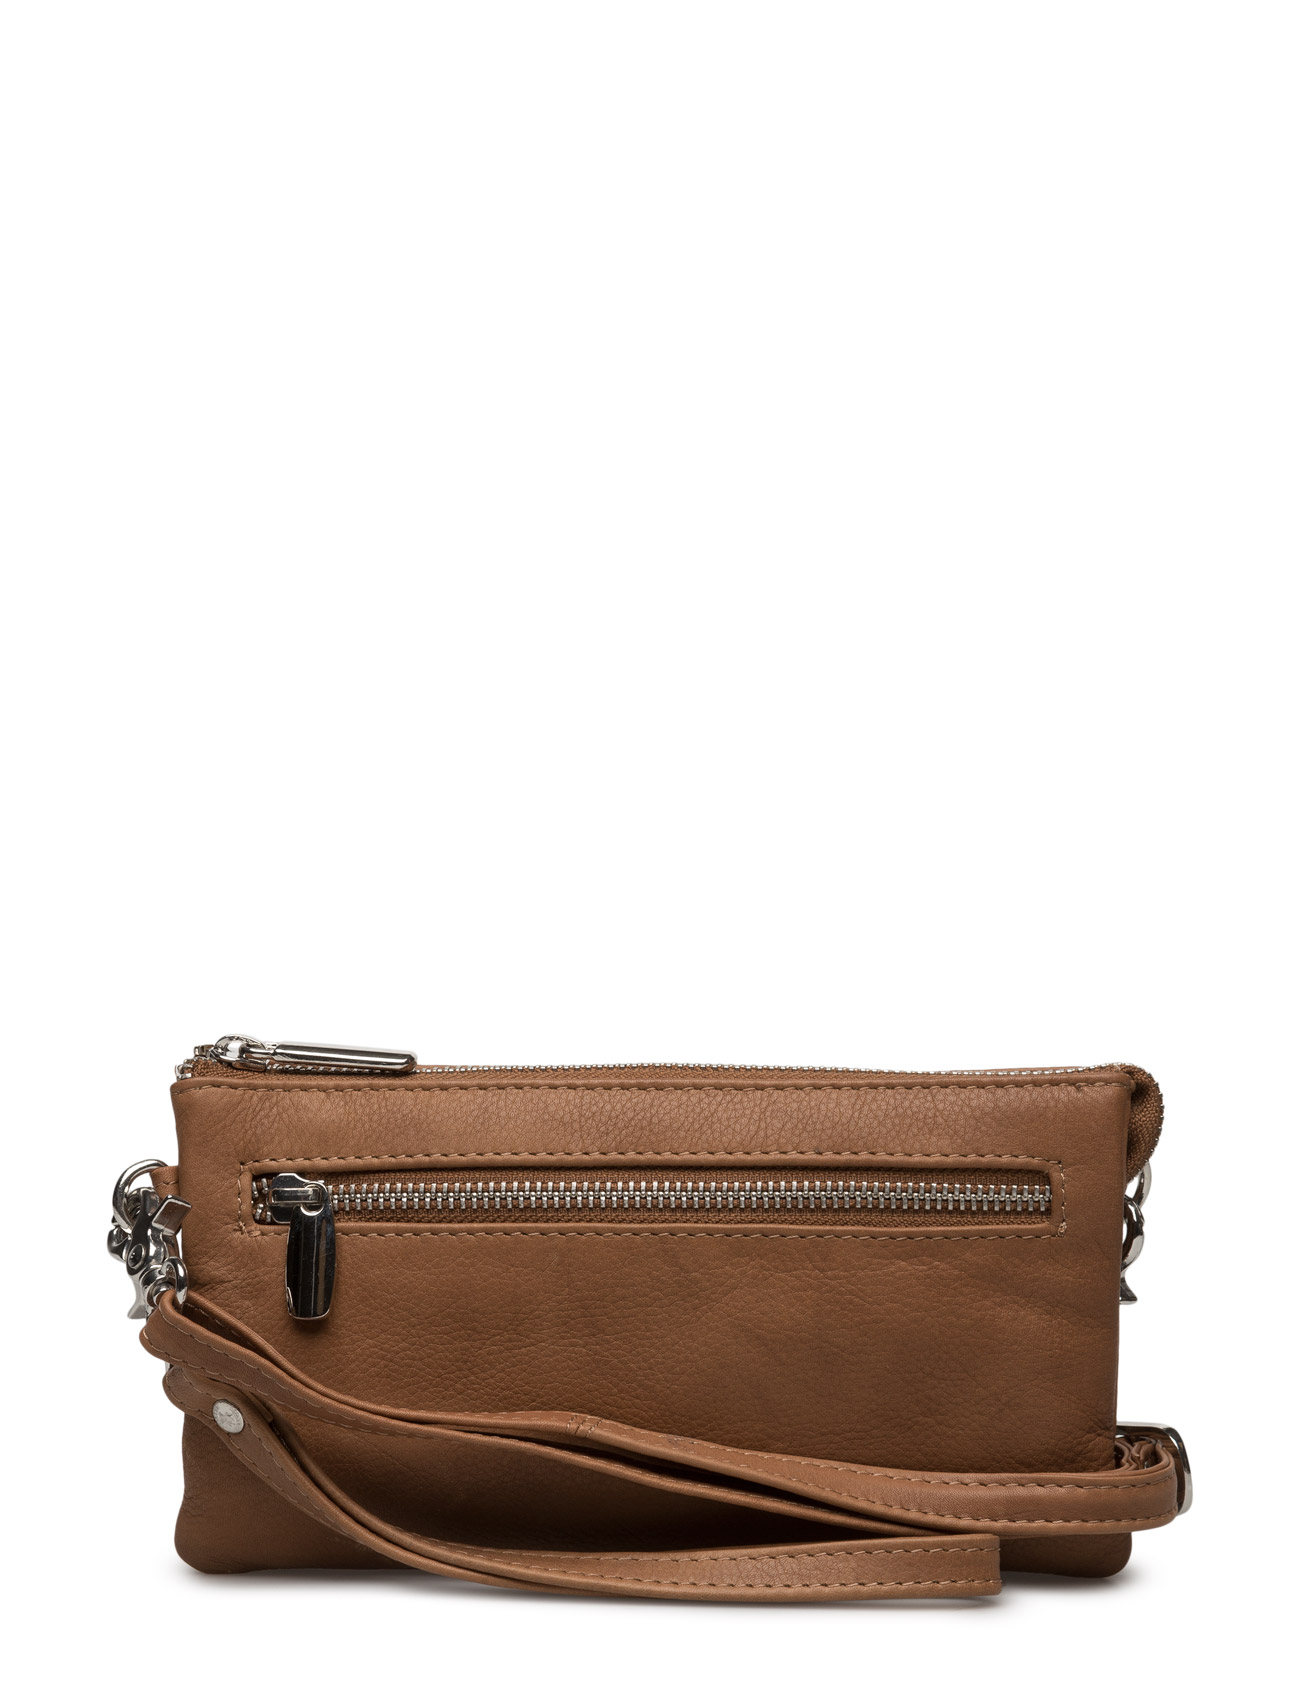 Image of Fashion Favourites Small Bag / Clutch Bags Small Shoulder Bags/crossbody Bags Brun DEPECHE (3111060647)